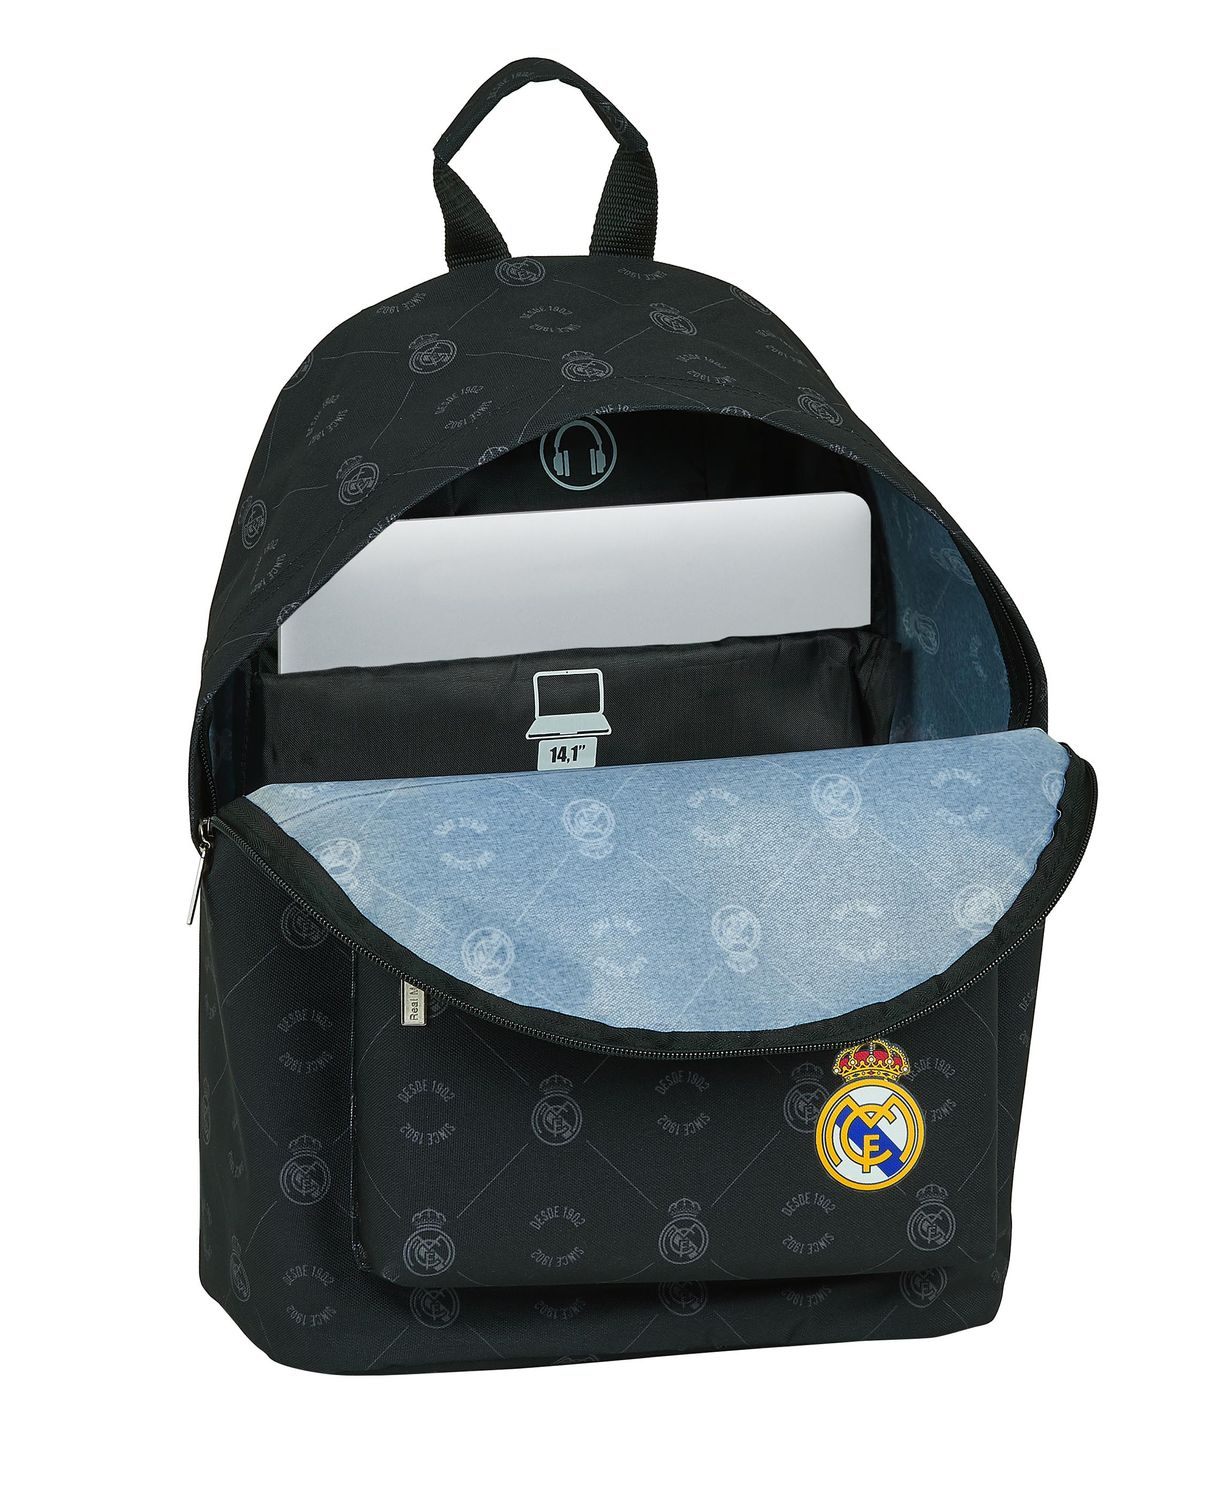 "REAL MADRID BLACK Laptop Backpack 14,1"" 41 cm – image 2"